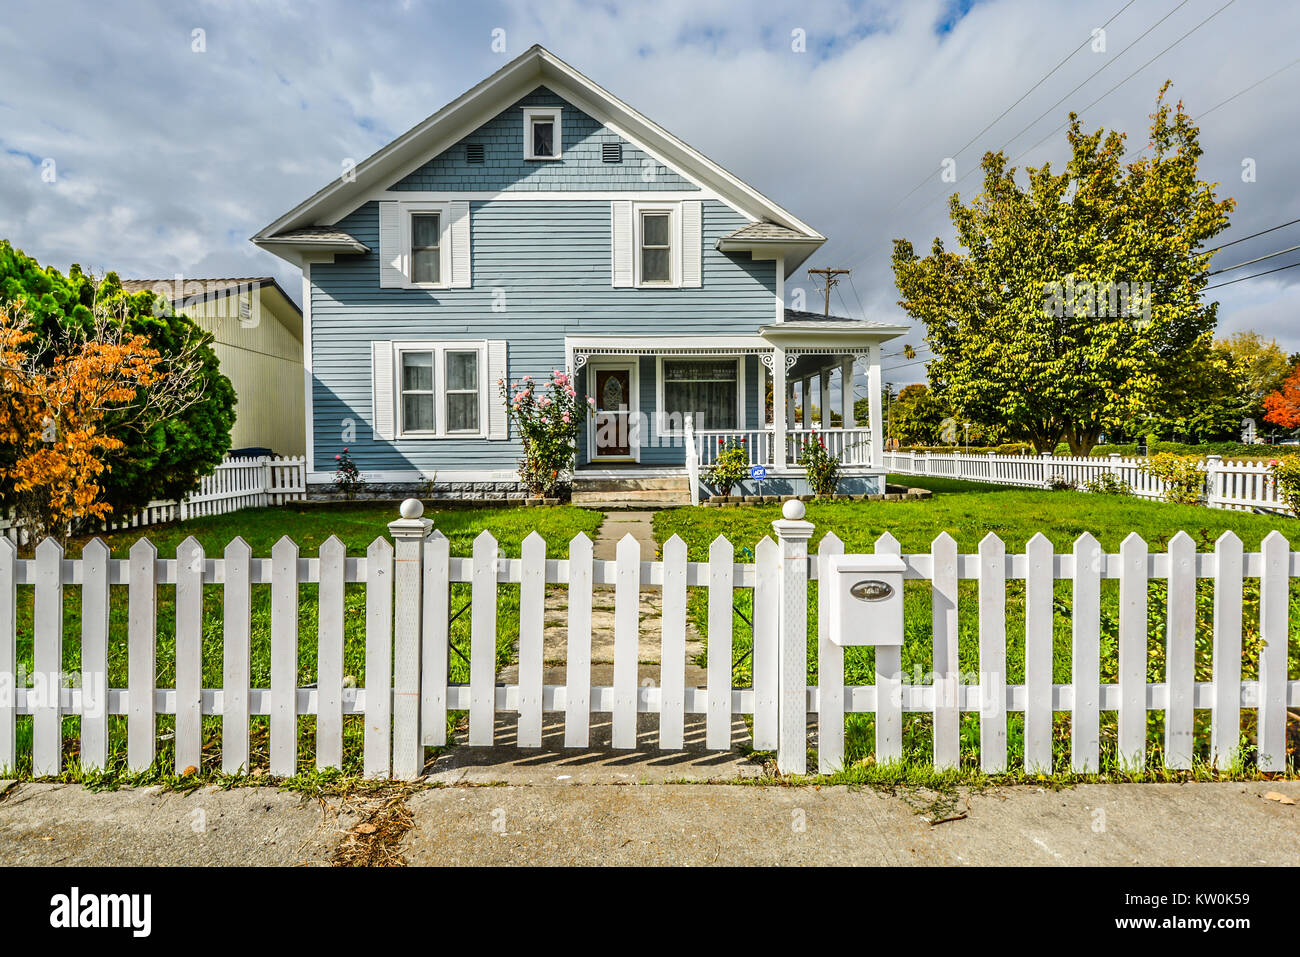 Cute, quaint vintage home with a small garden, covered front porch and white picket fence in the American Northwest - Stock Image